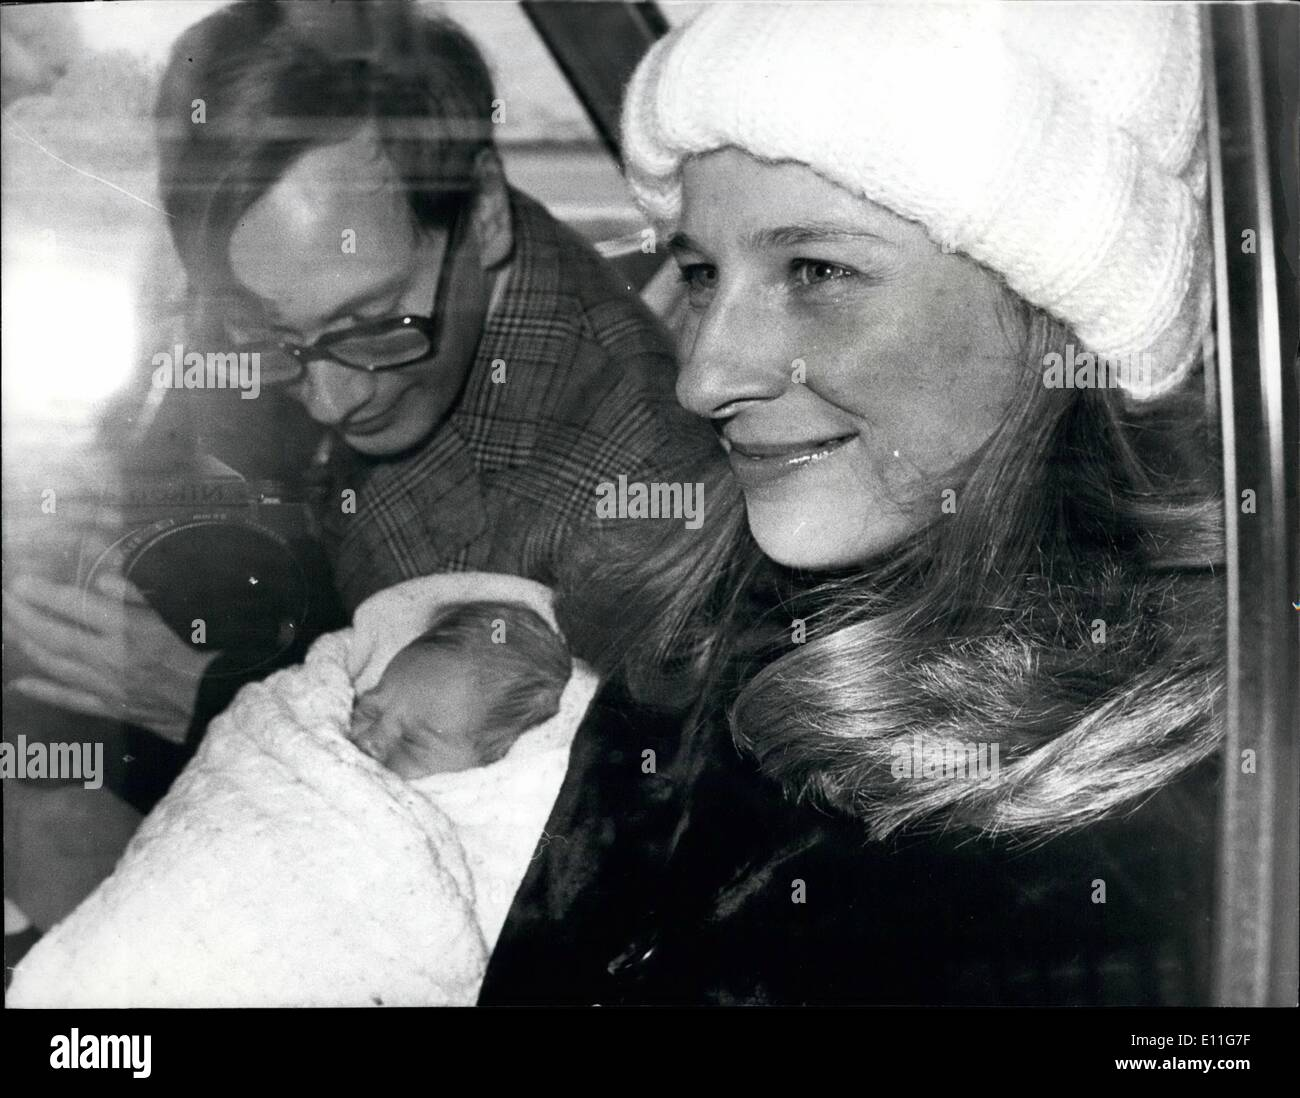 Nov. 11, 1977 - Duchess of Gloucester leaves St. Mary's with her Baby daughter: The Duke and Duchess of Gloucester leaving St. Mary's Hospital, Paddington, for Kensington Palace on Saturday with their one-week-old daughter, who is to be named Lady Davina Elizabeth Benedikte Windsor. - Stock Image